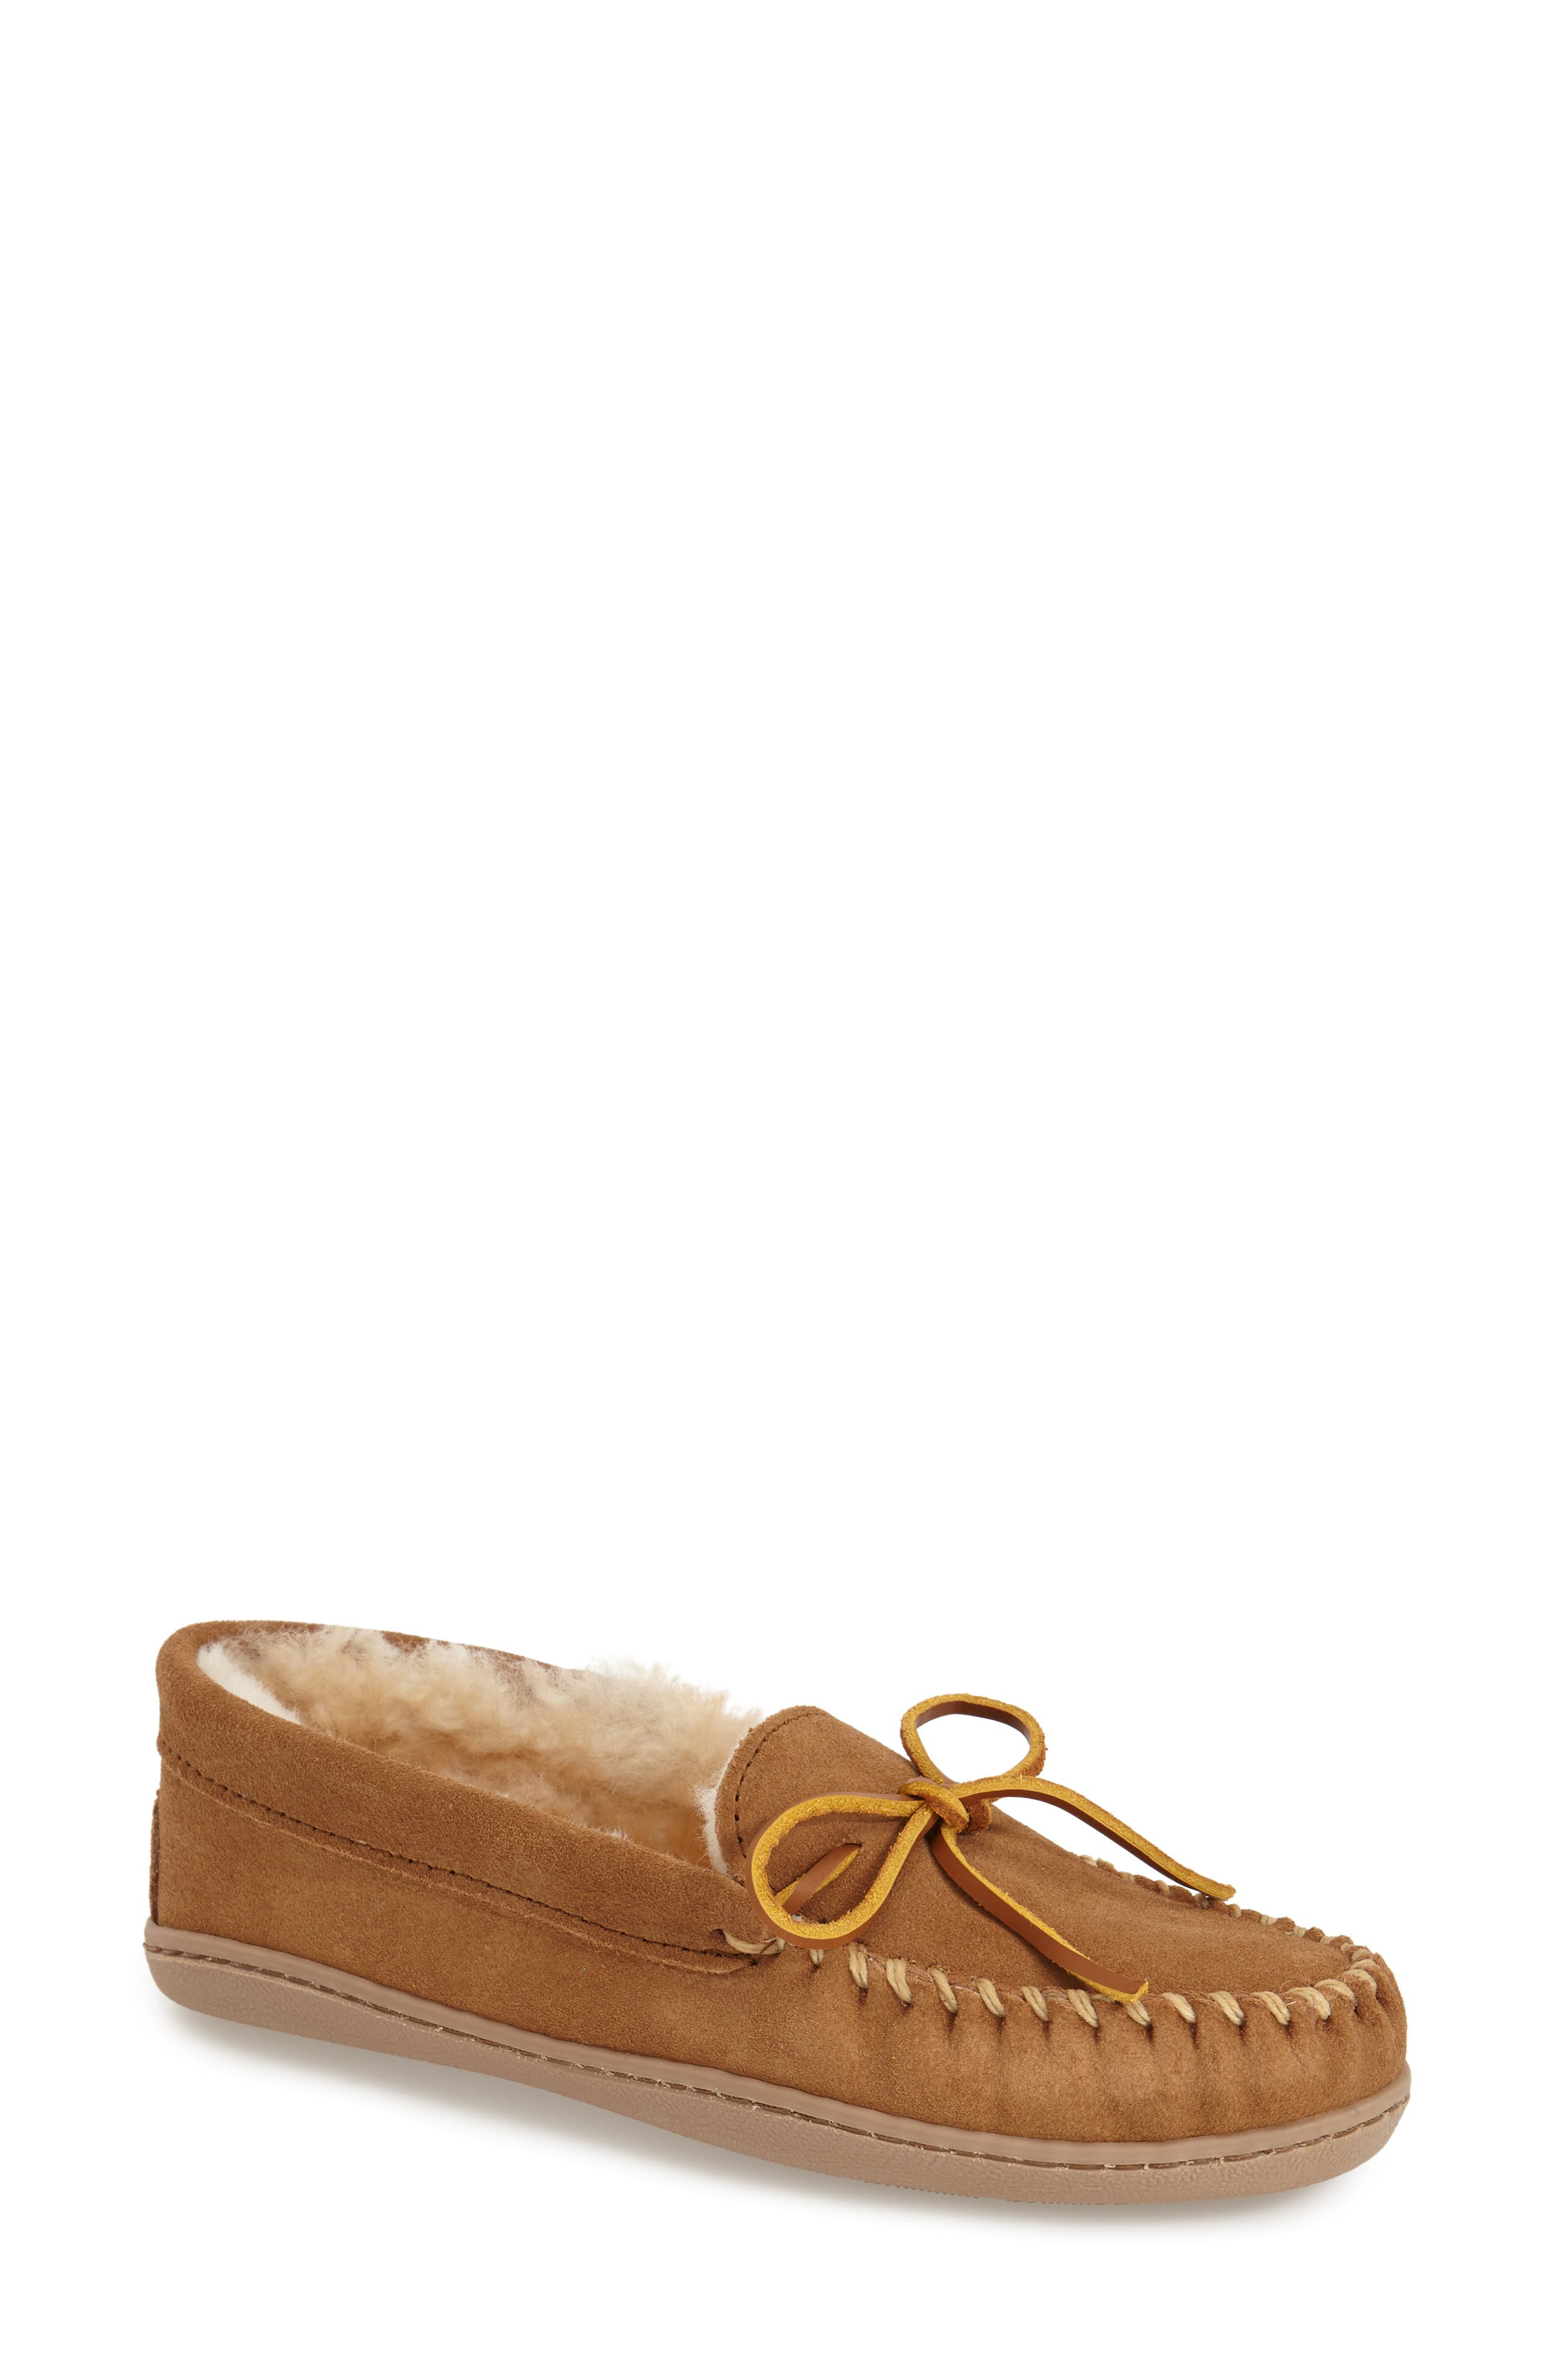 MINNETONKA, Sheepskin Hard Sole Moccasin Slipper, Alternate thumbnail 4, color, TAN SUEDE